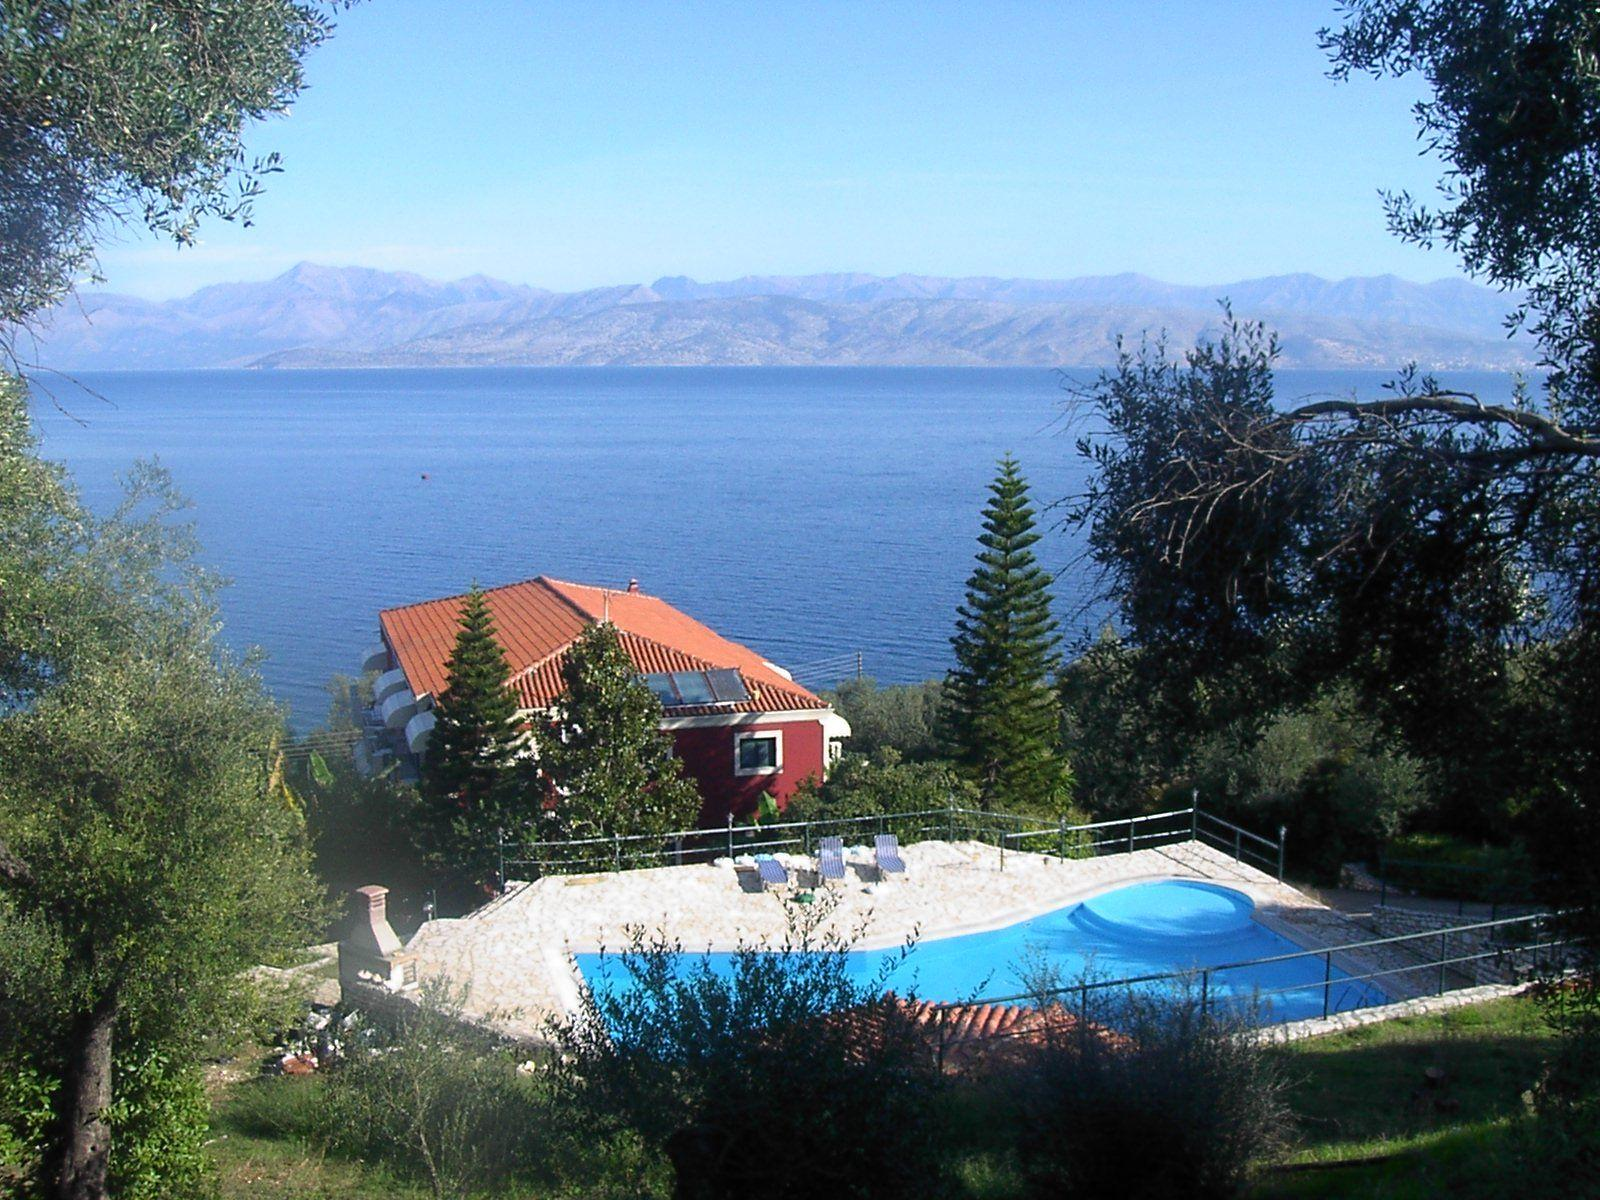 Holidays at Apraos Bay Hotel in Apraos Bay, Kassiopi